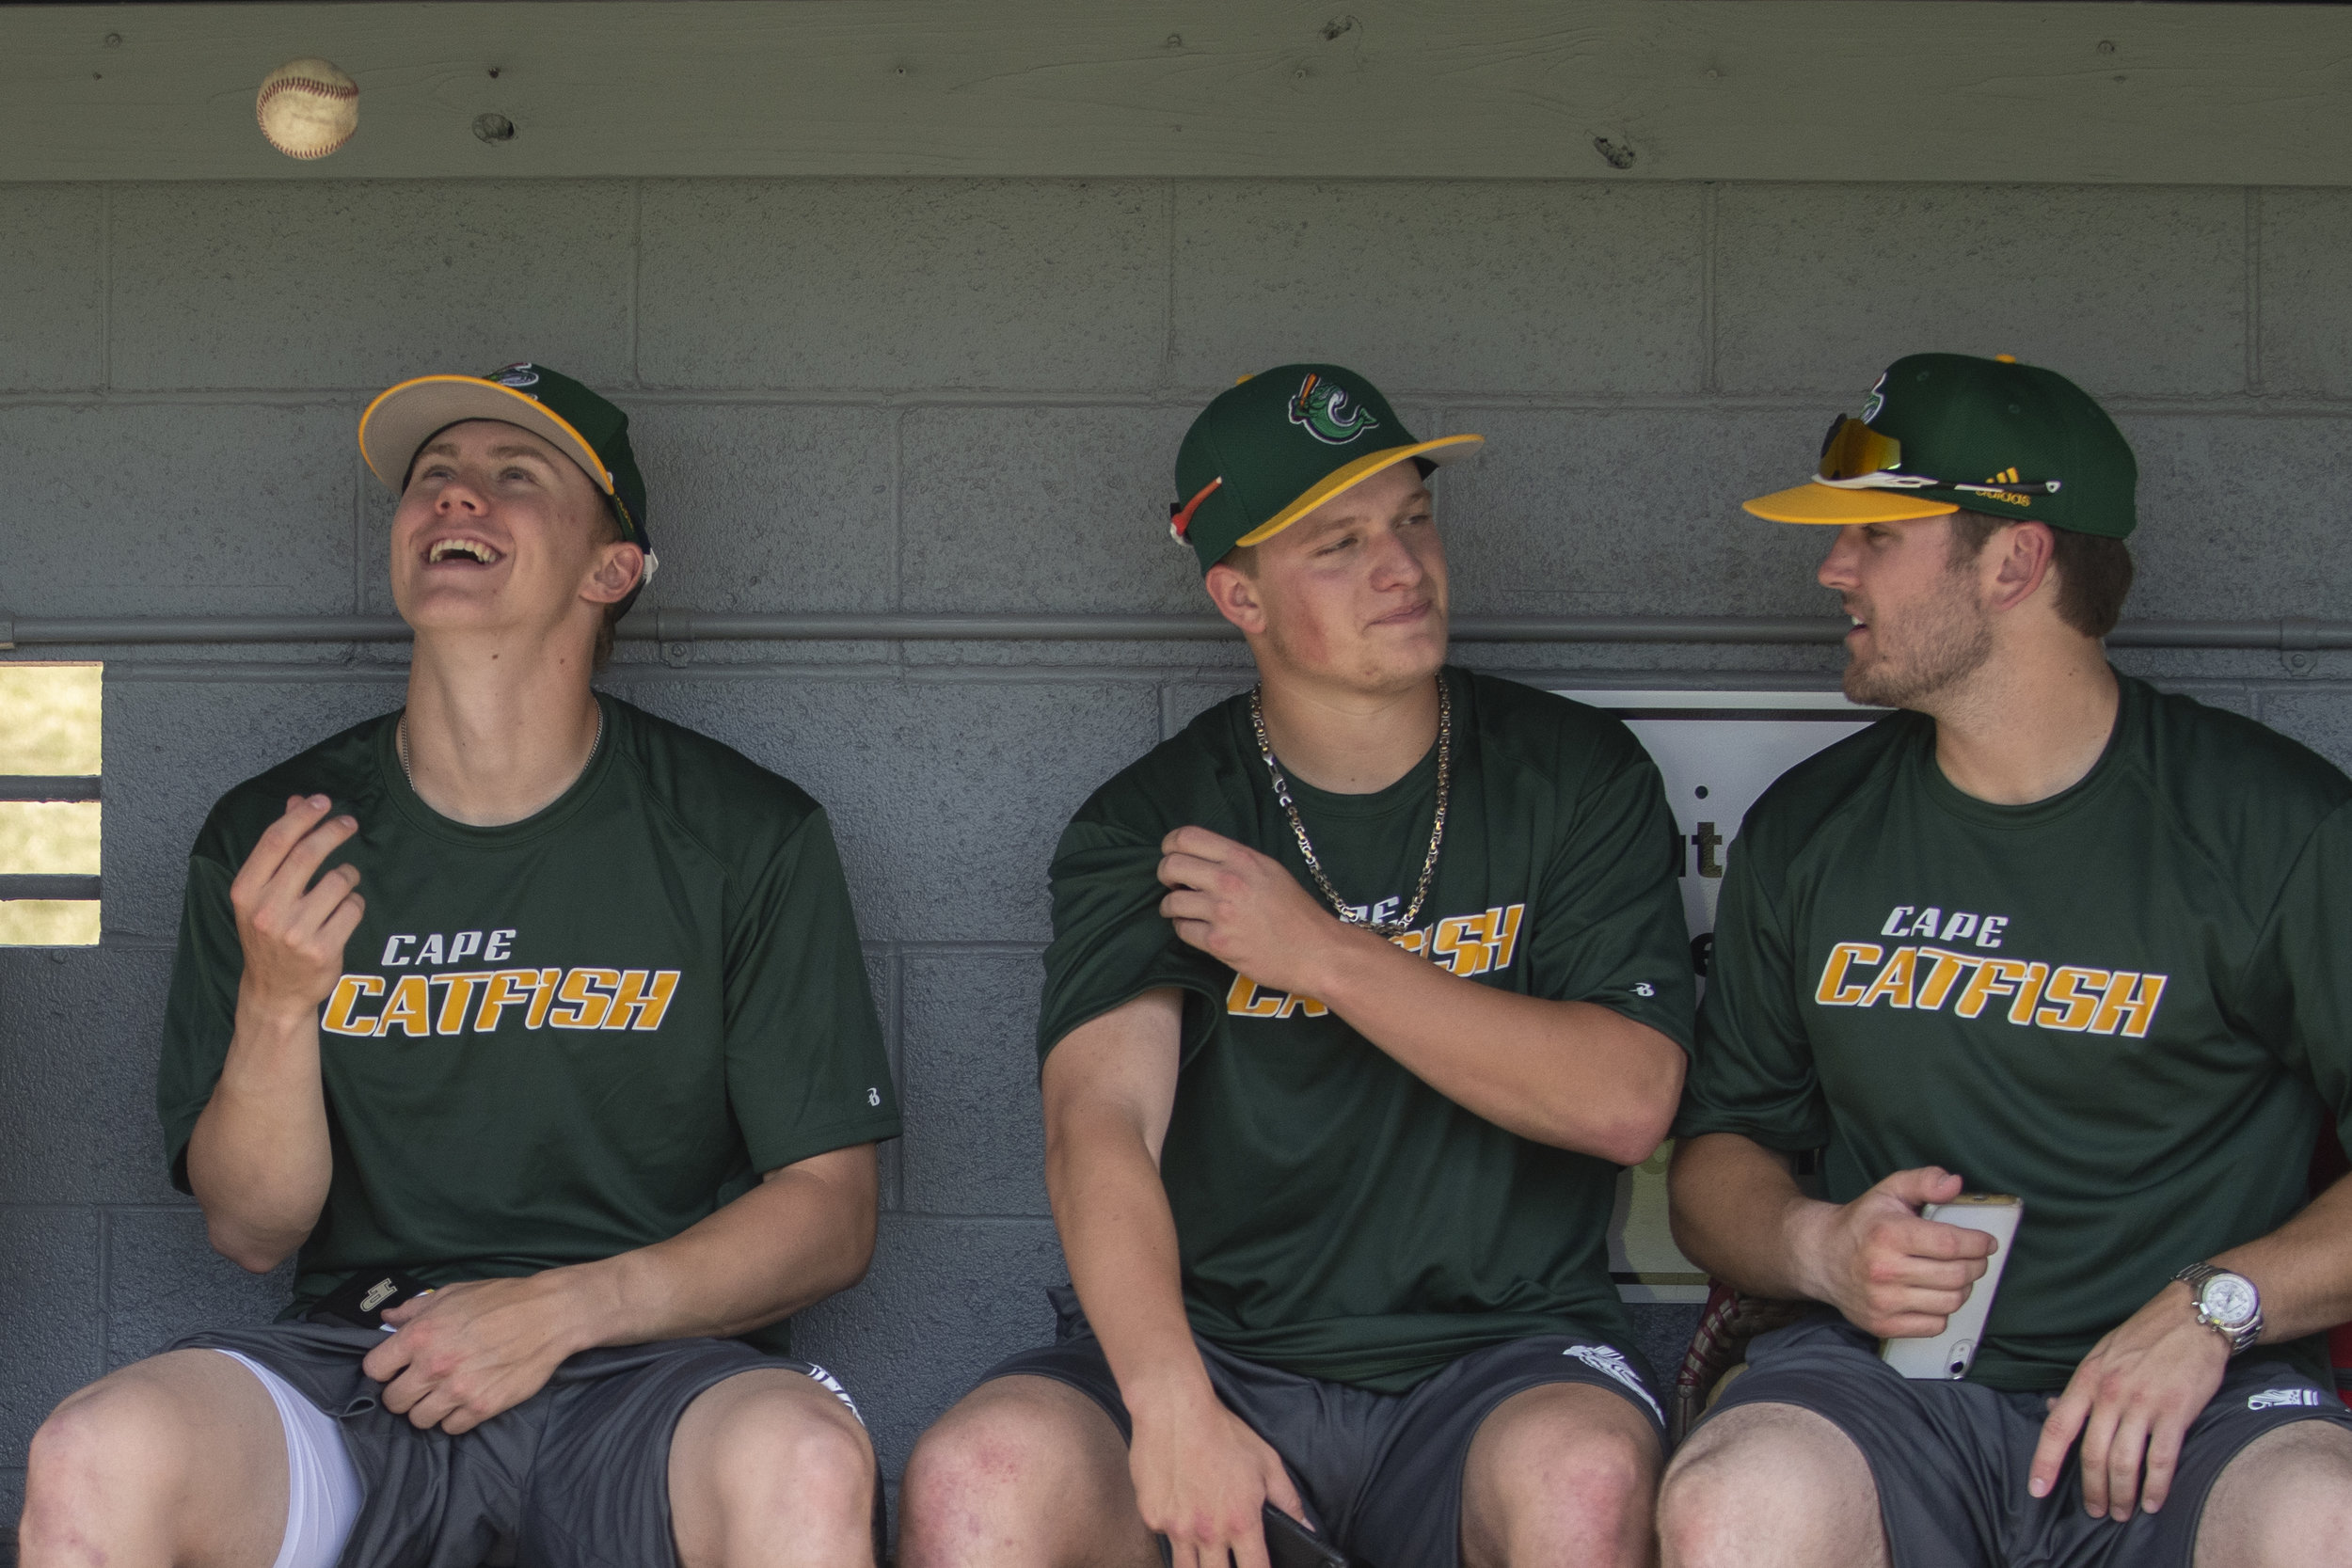 Cape Catfish, from left, infielder Ryan Howe, infielder Zane Wallace and outfielder Peyton Faulkner have a seat in the dugout during the first practice of the Cape Catfish on Tuesday, May 28, 2019, at Capaha Field in Cape Girardeau. Jacob Wiegand | Southeast Missourian